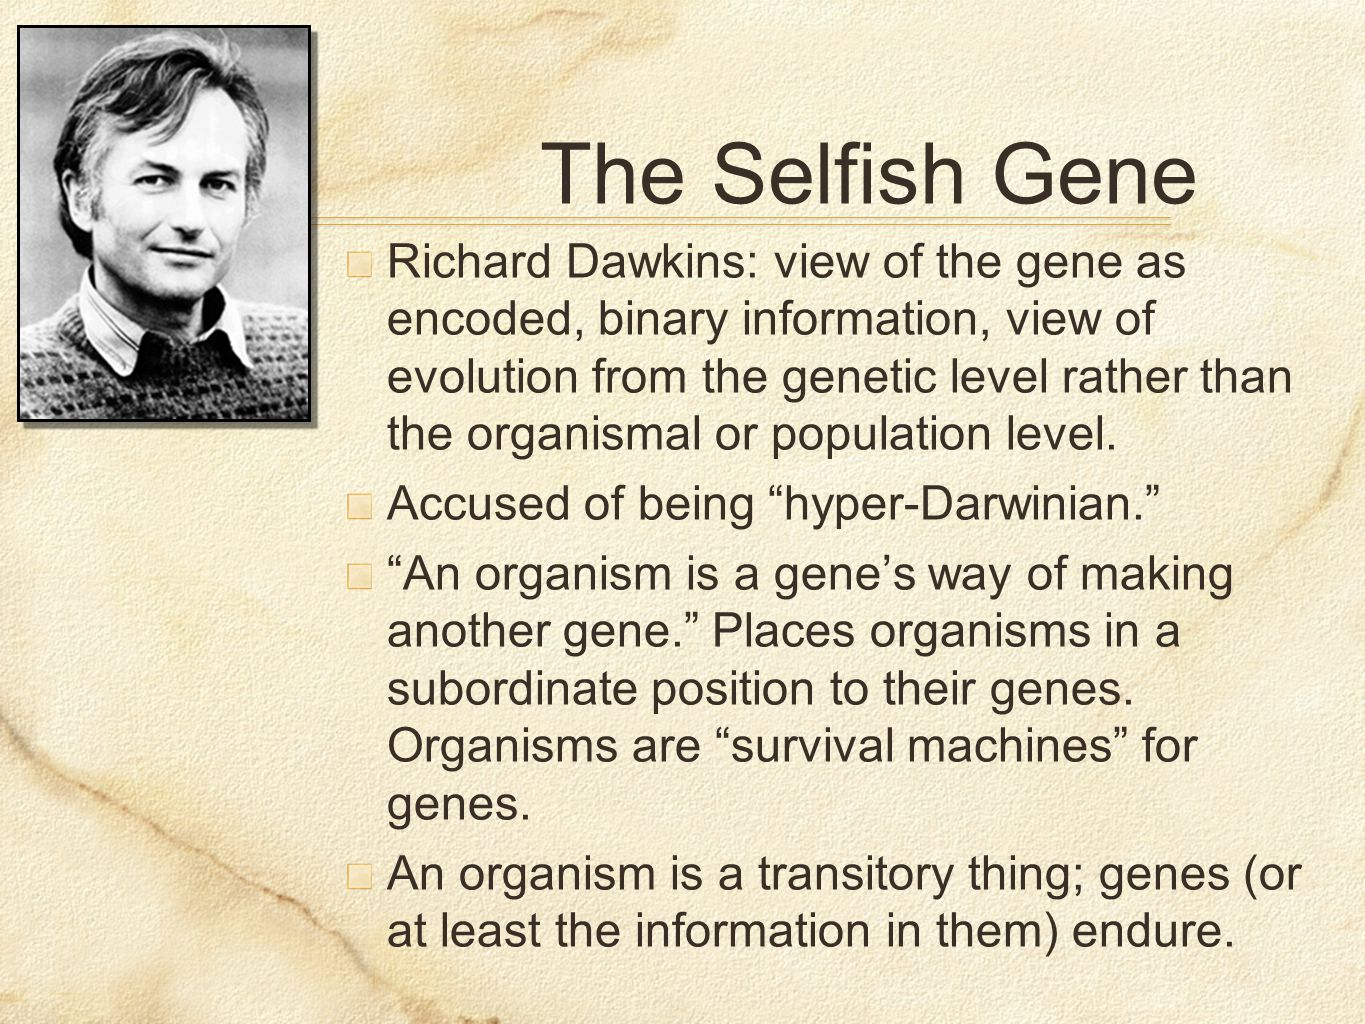 The Selfish Gene Richard Dawkins: view of the gene as encoded, binary information, view of evolution from the genetic level rather than the organismal or population level.